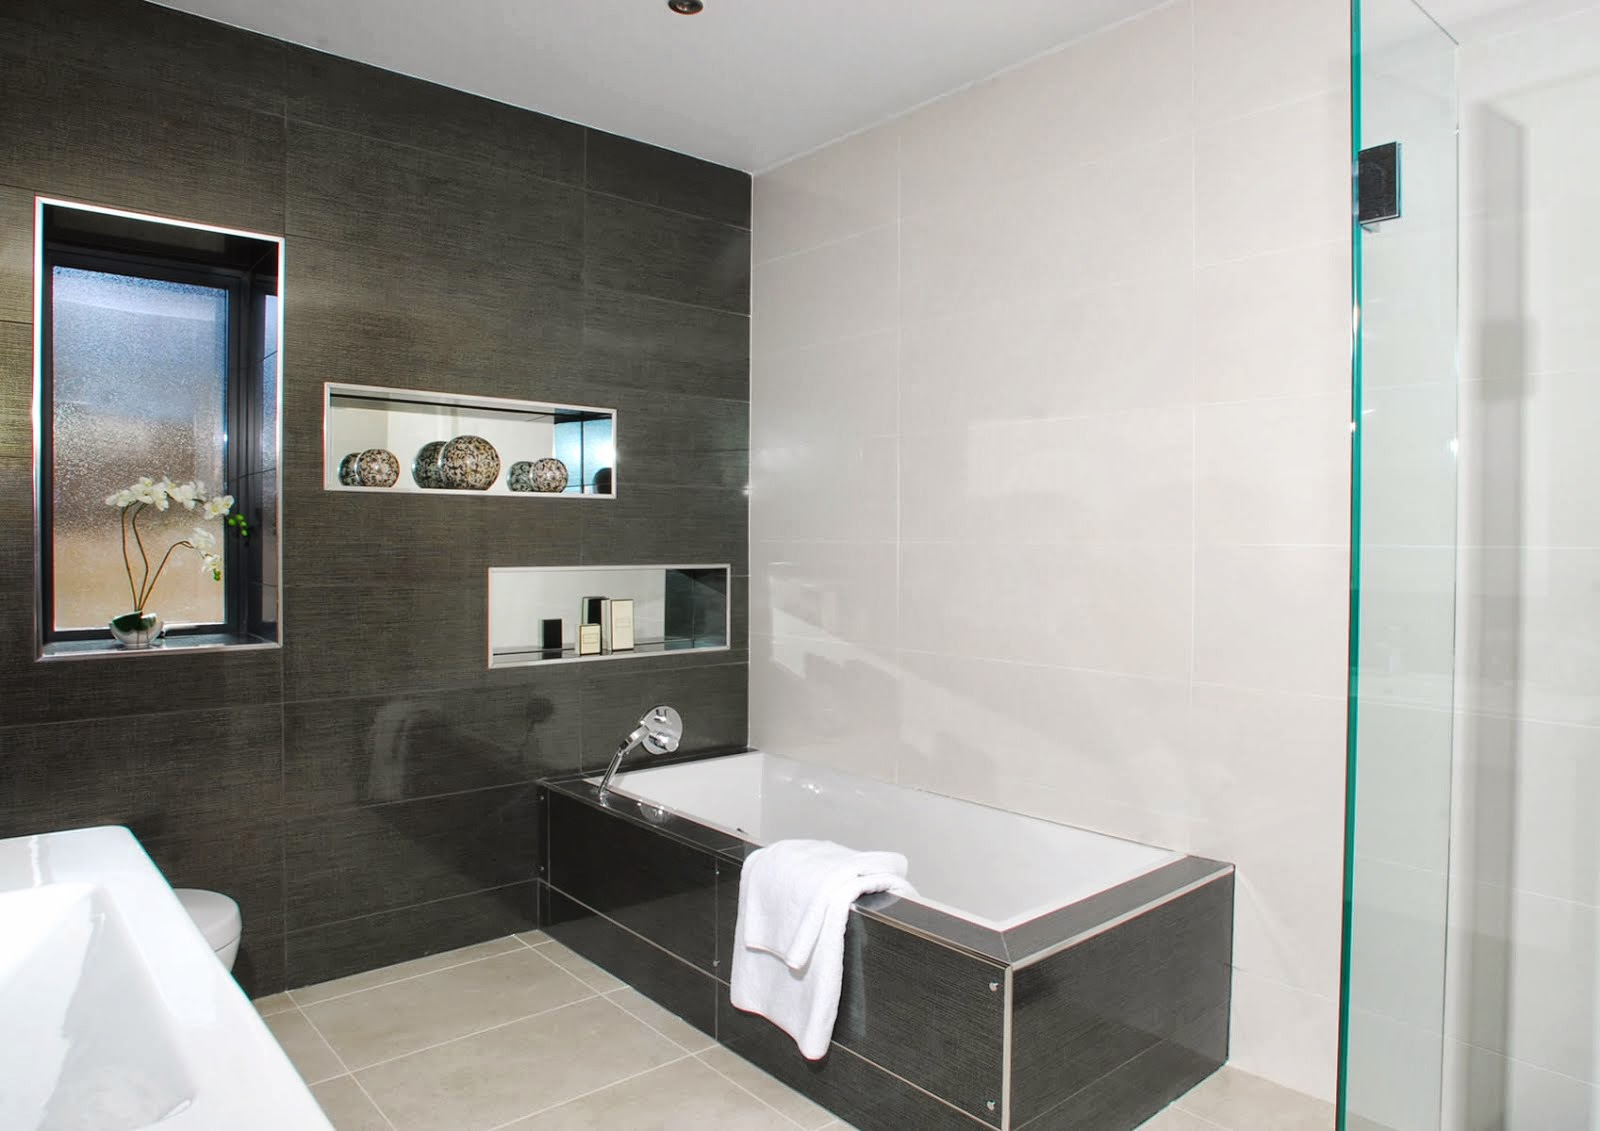 bathroom design ideas uk - Contemporary Bathroom Designs Uk